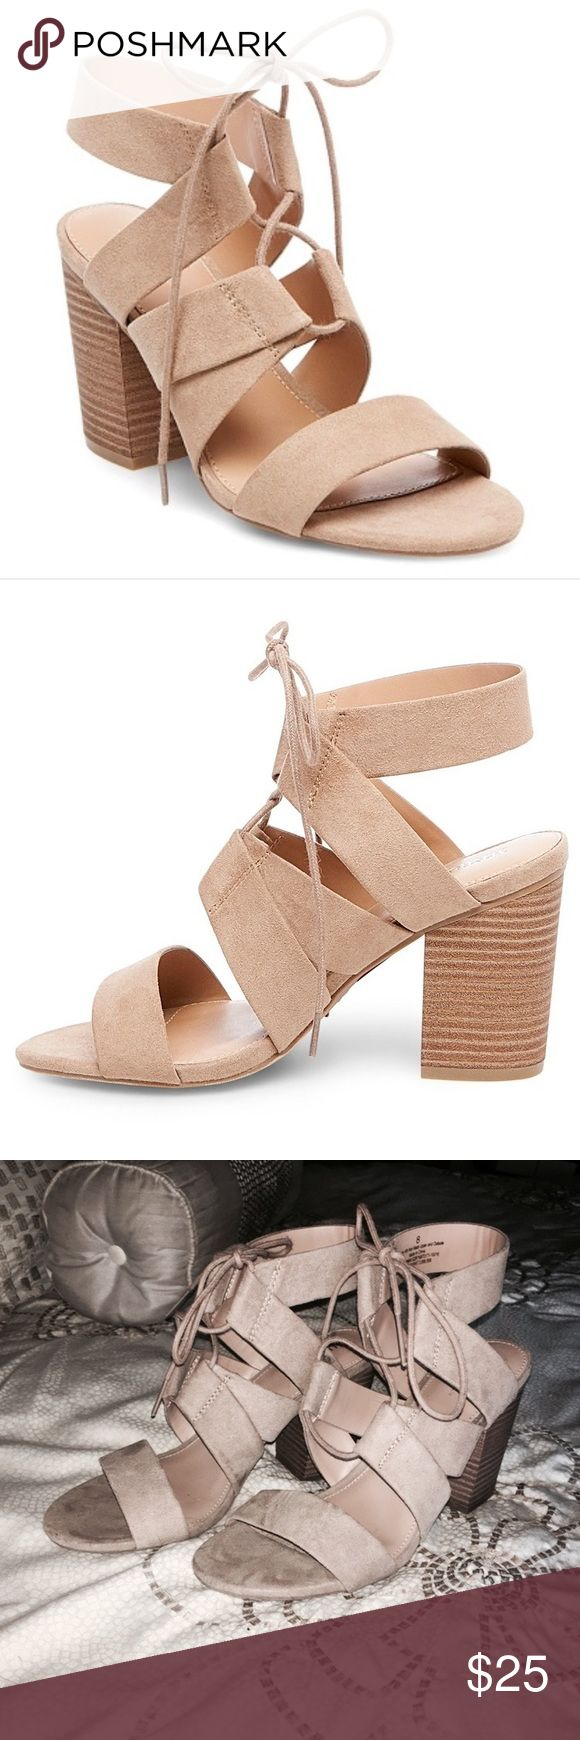 Merona Tan Strappy Heels Super cute worm once! True to size. Perfect condition Merona Shoes Heels